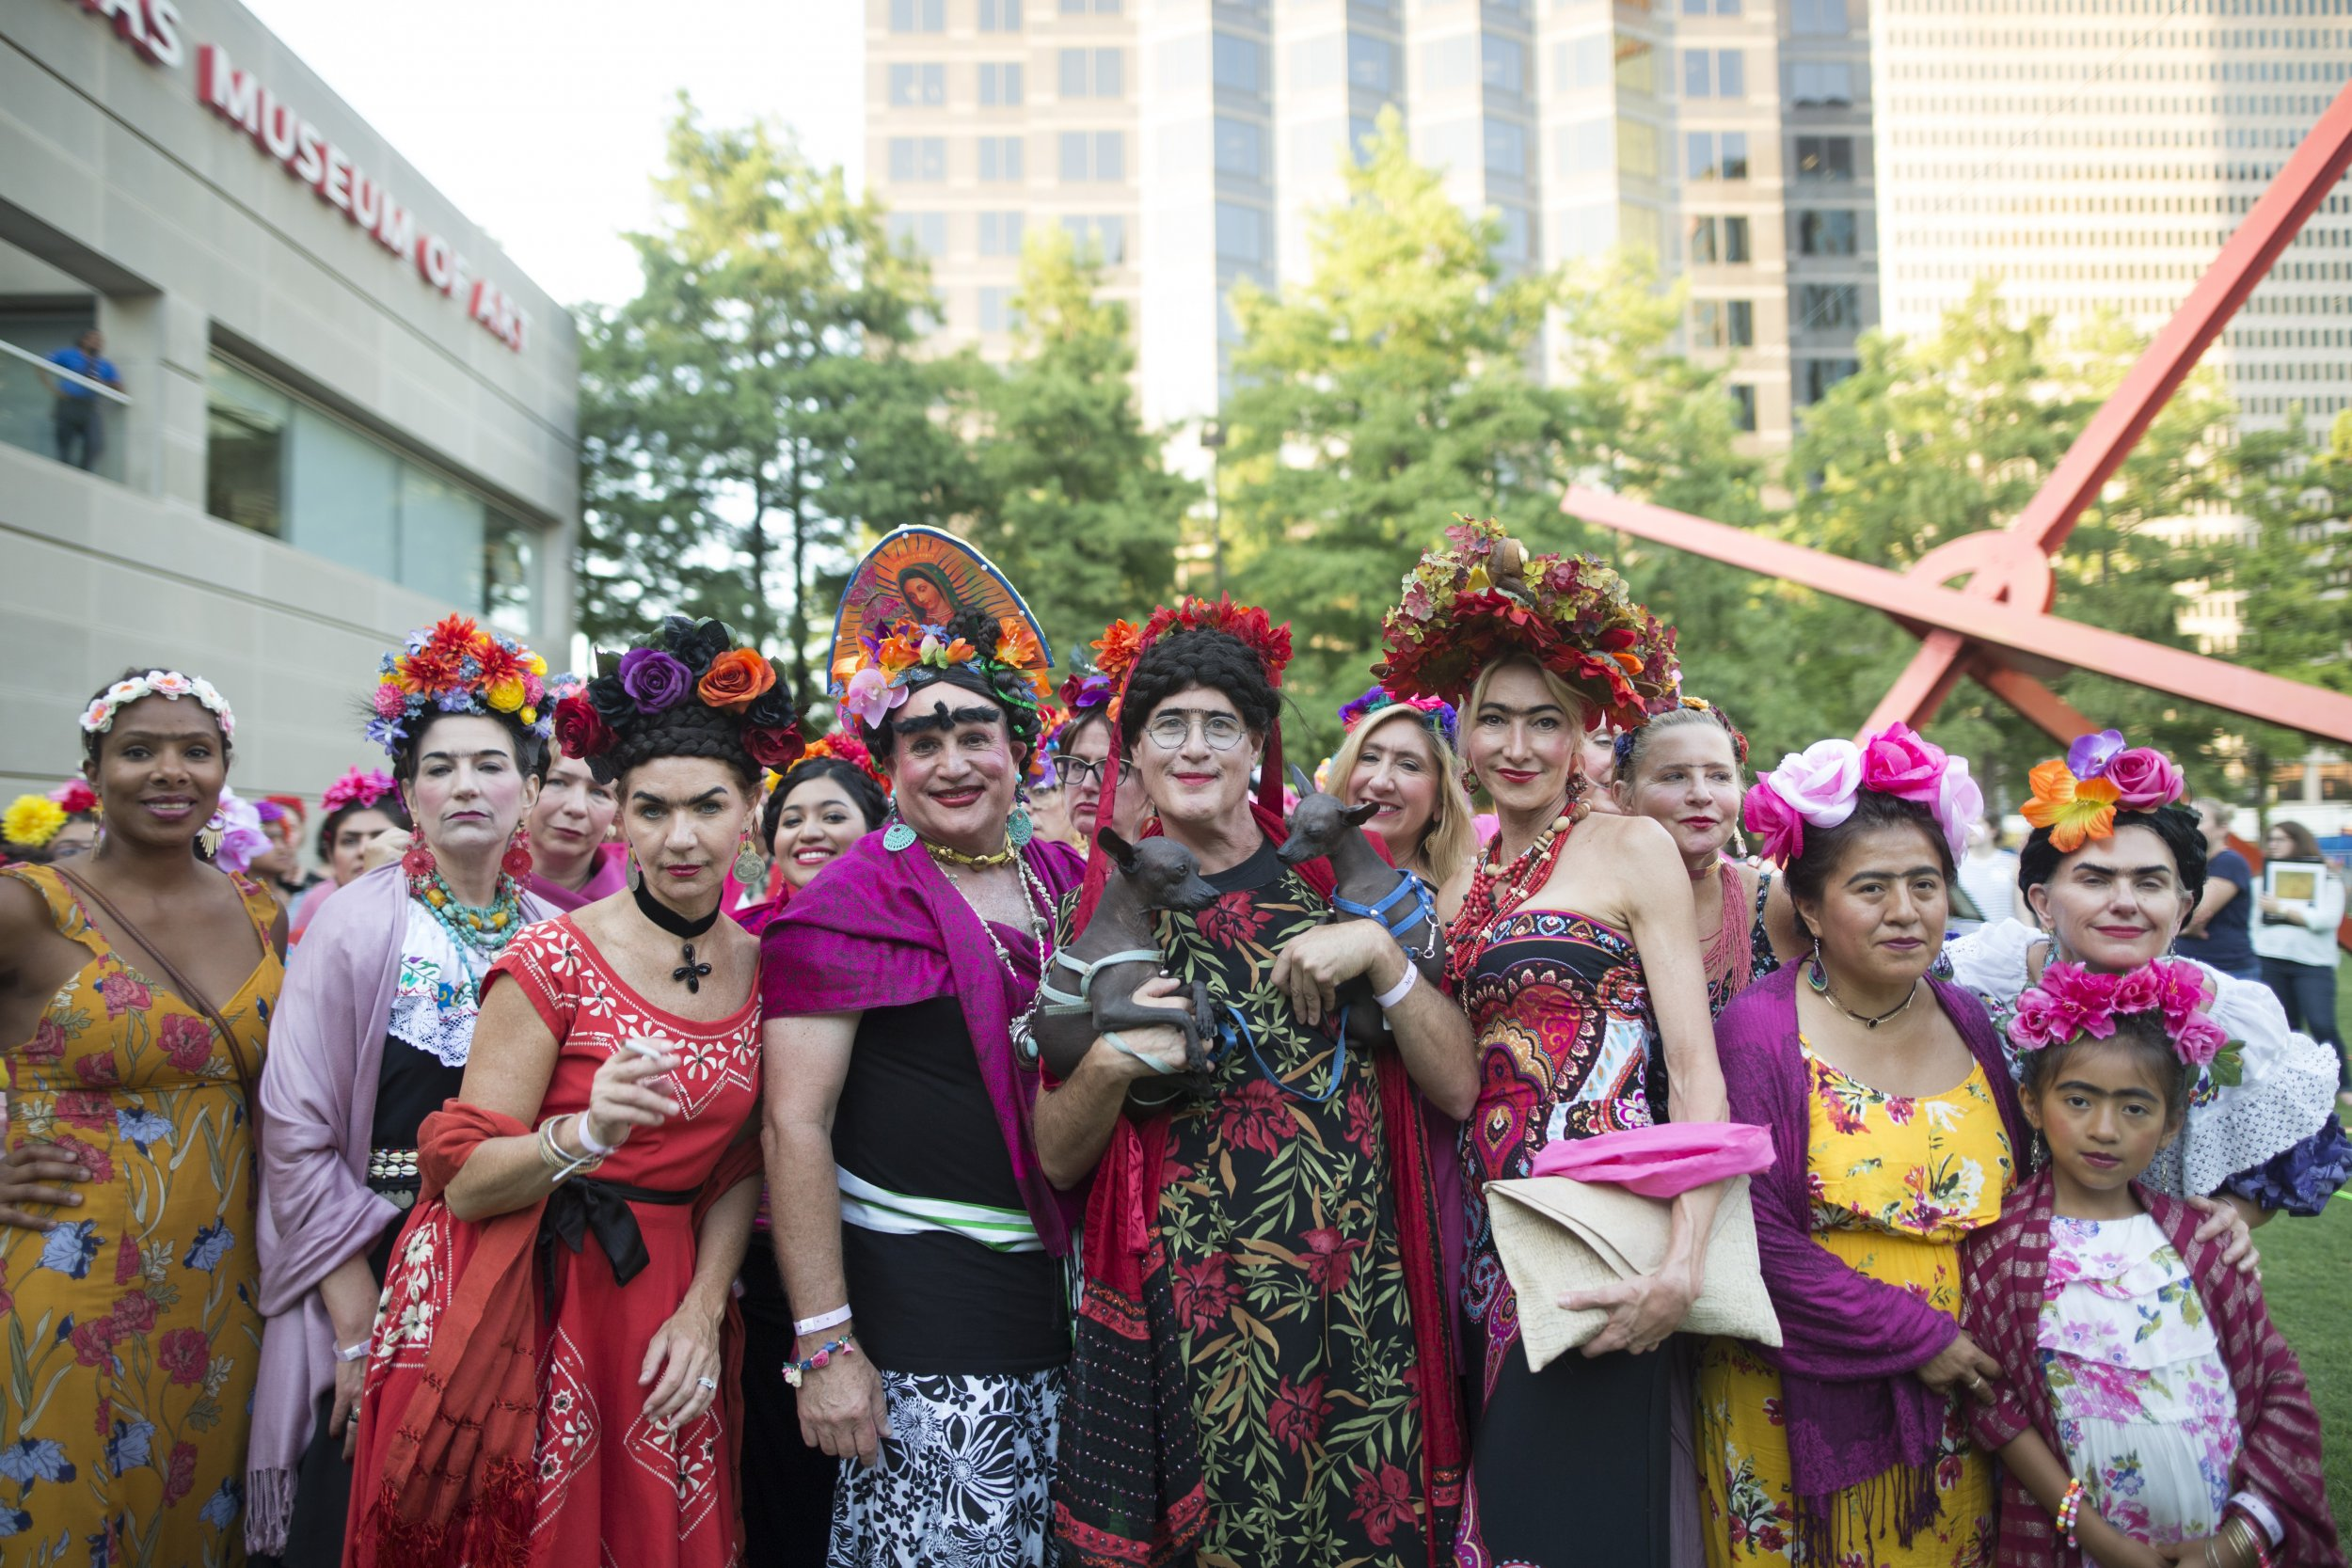 Dallas Museum of Art_Guinness World Record attempt_July 6 2017 (1)_image credit Christina Childress Photography